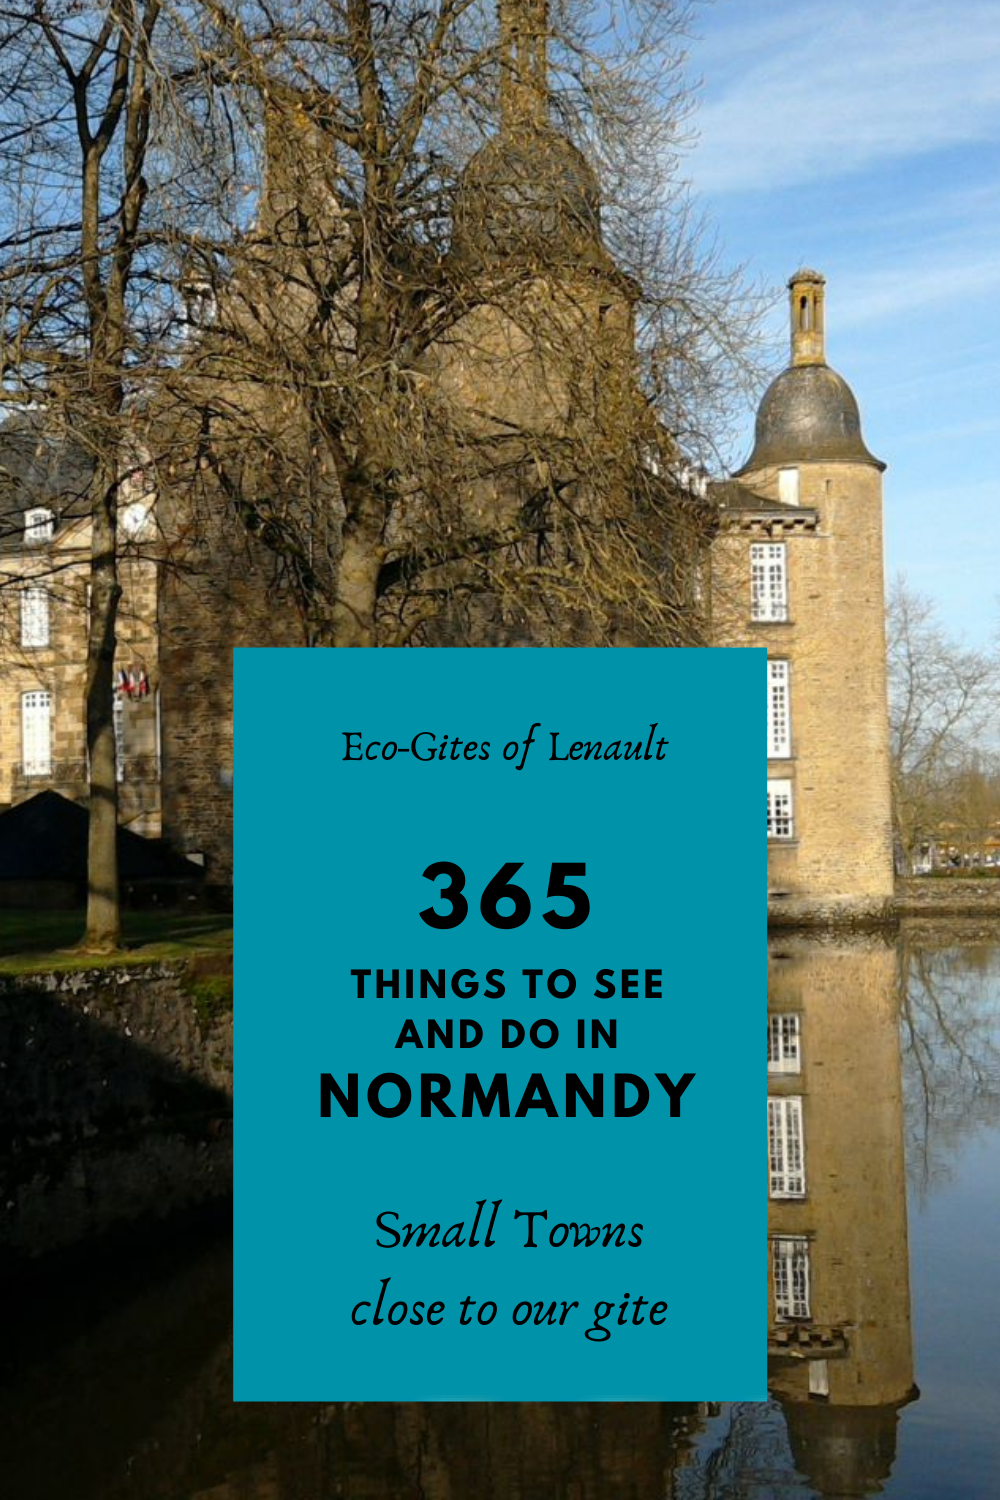 Small towns close to Eco-Gites of Lenault, Normandy, France